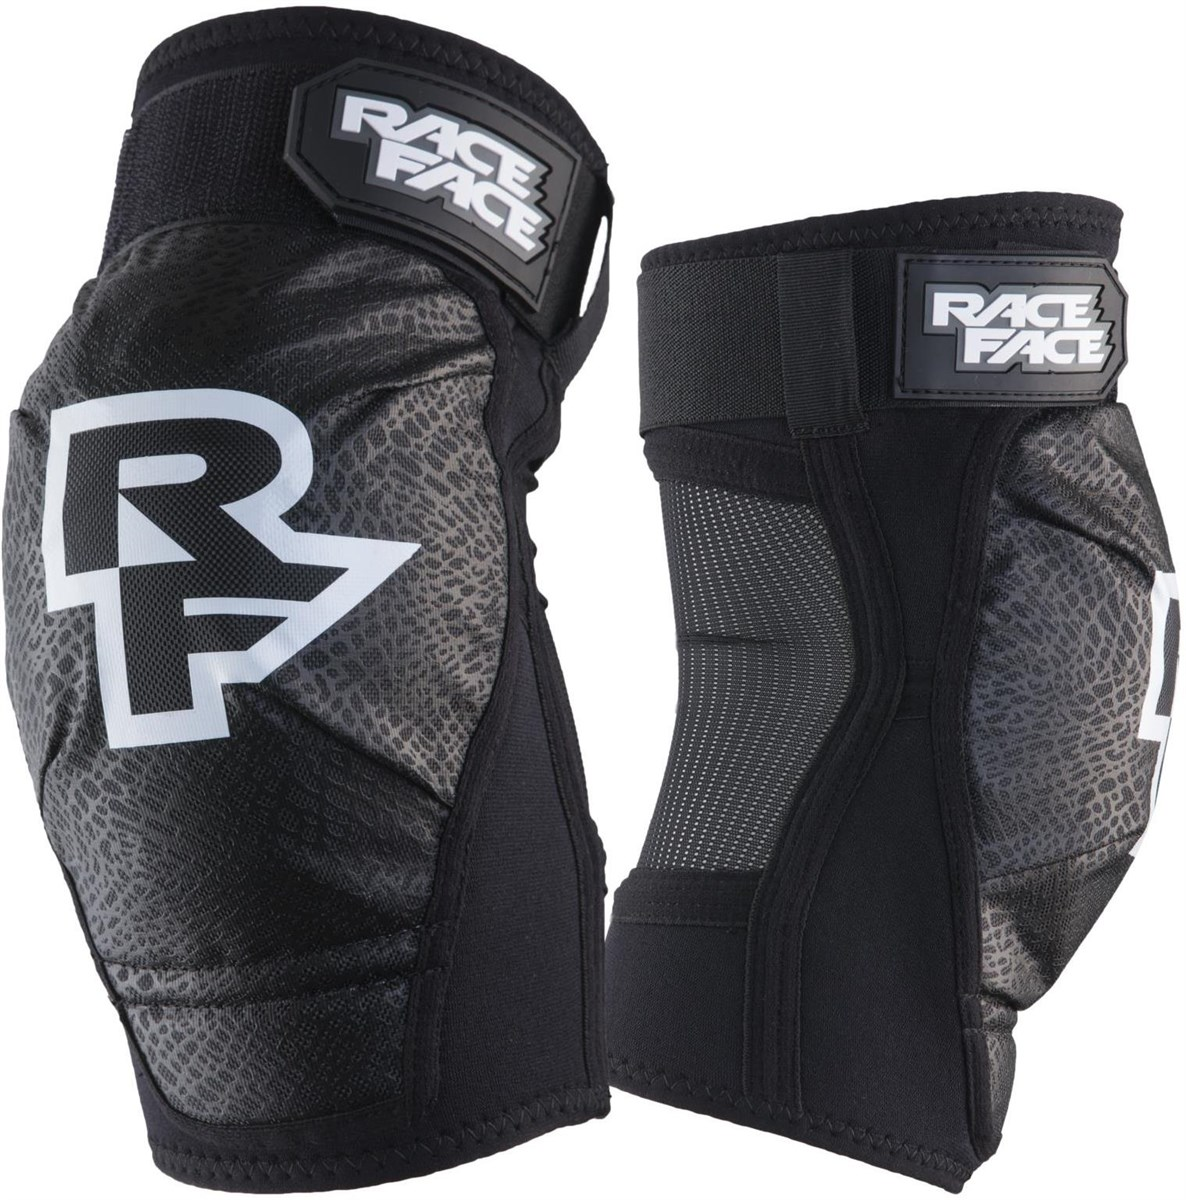 Race Face Dig Elbow Guard